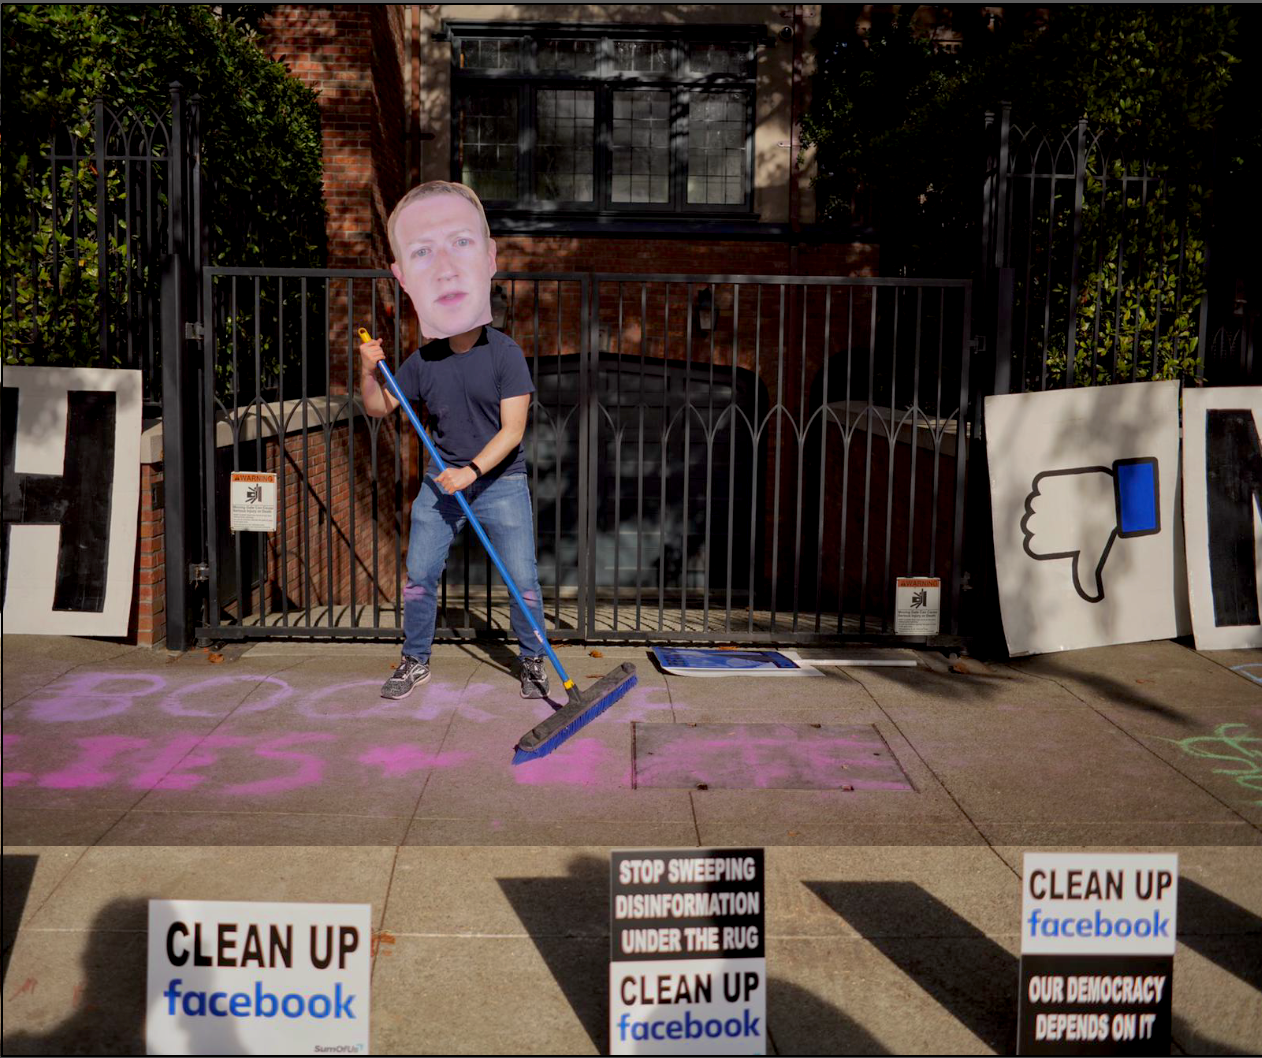 UntitledProtest Outside Mark Zuckerberg's Home to Demand Facebook Clean Up Its Act: SumOfUs Demands Platform Stop Destroying Democracy with Disinformation Spread